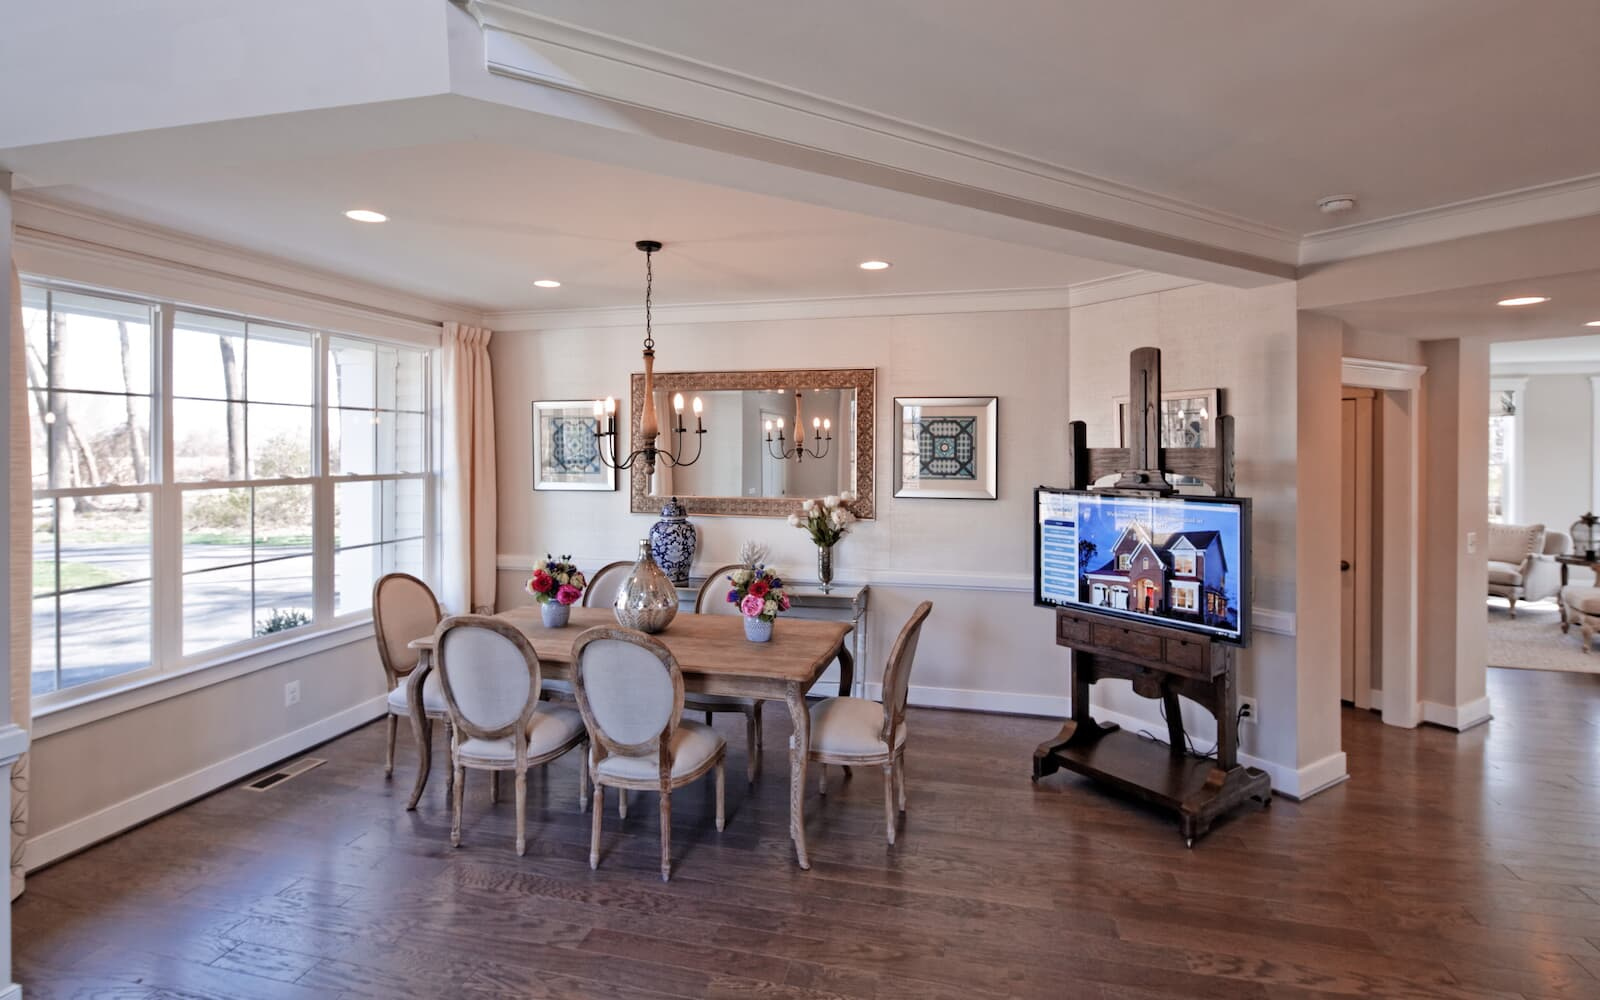 BecknerII-formal-dining-room-single-family-home-potomac-shores-va-potomac-shores-brookfield-residential